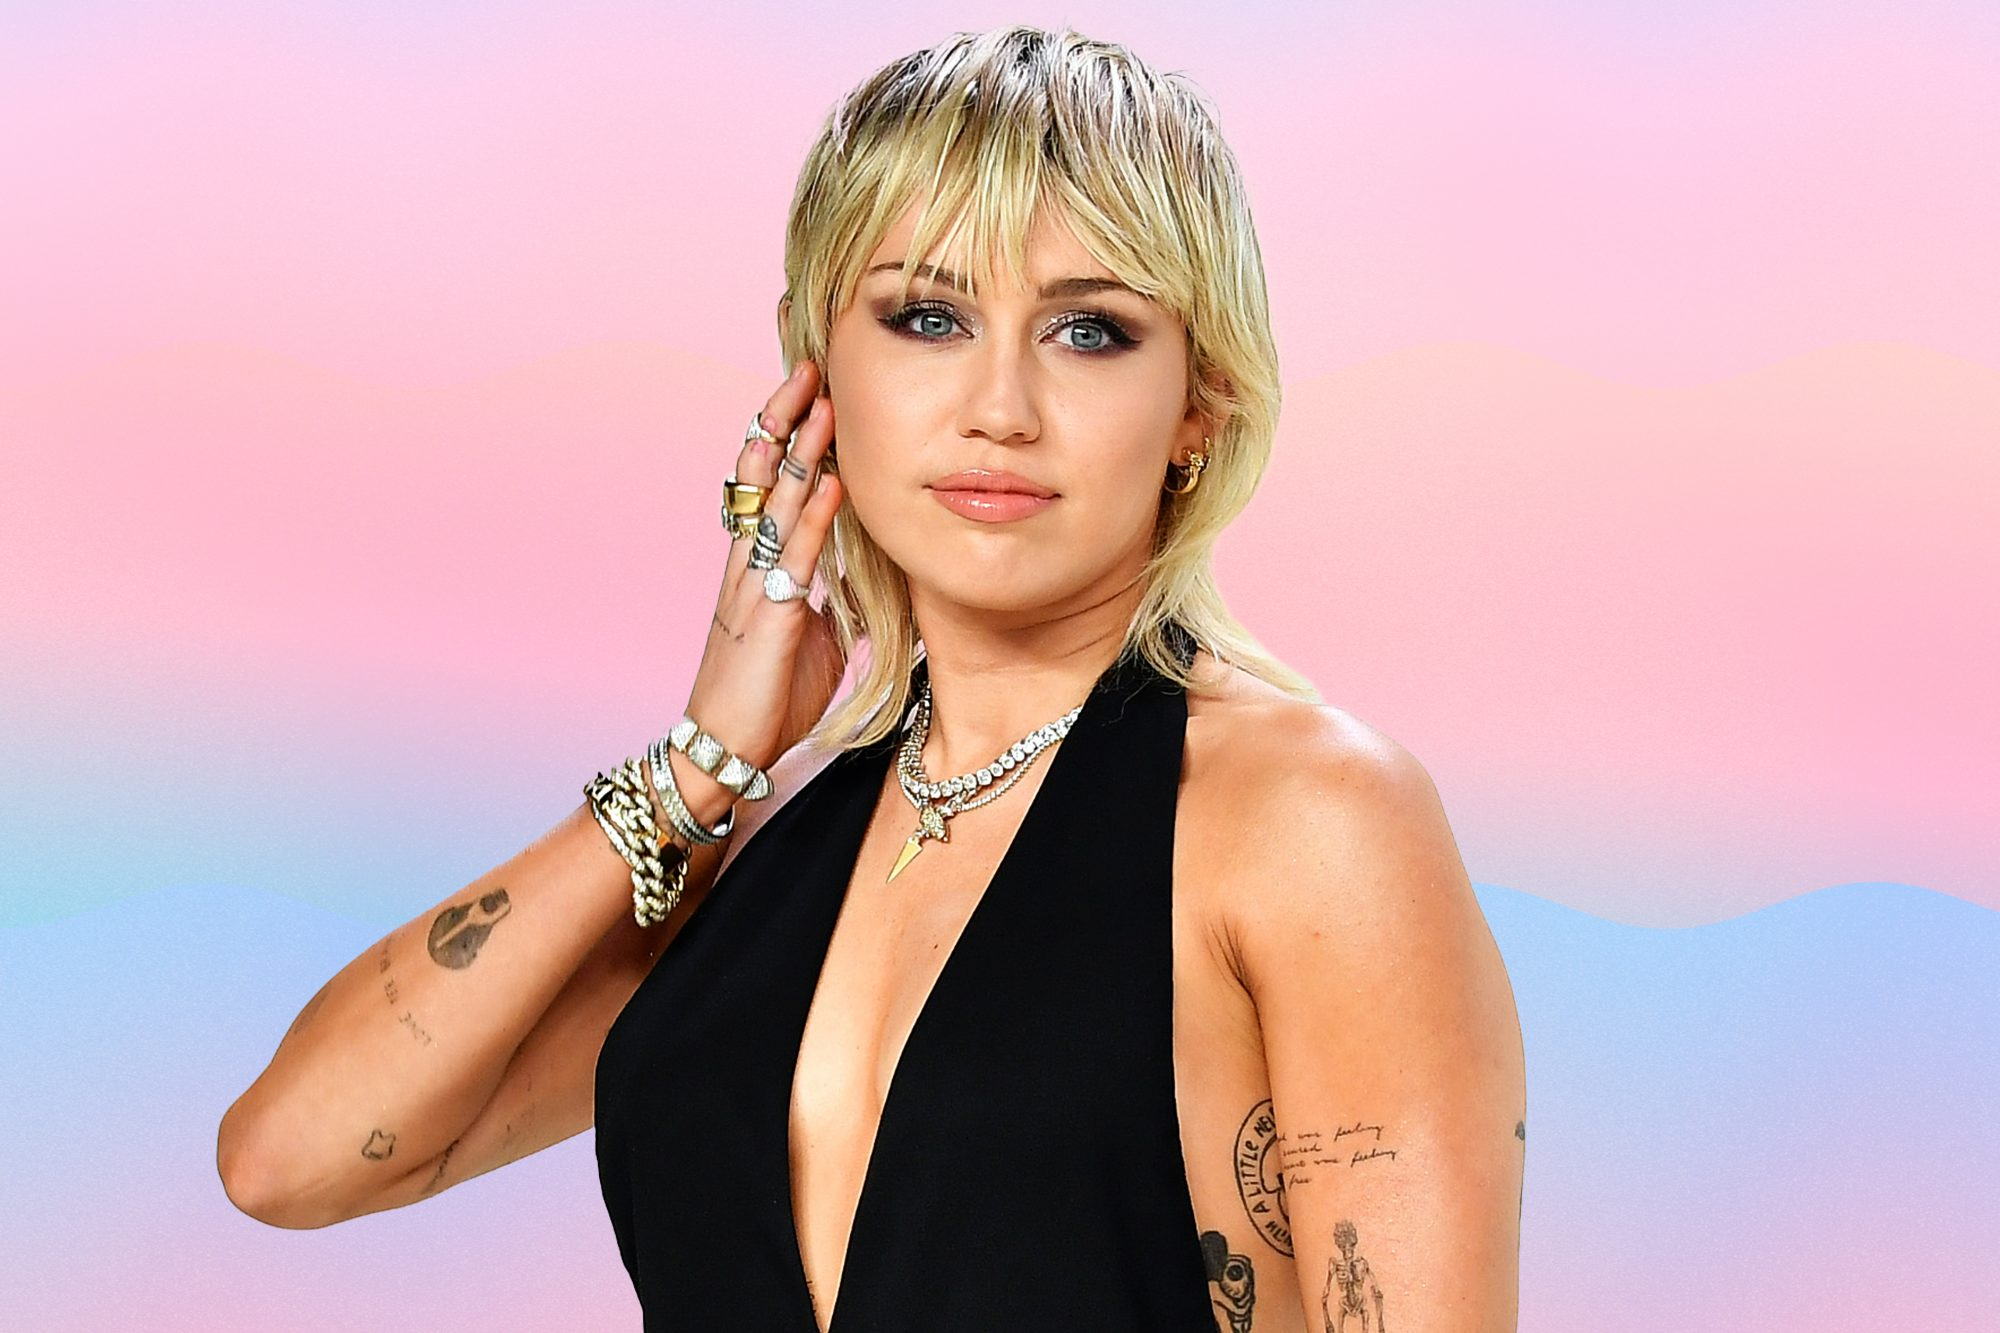 Miley-Cyrus-Felt-a-Panic-Attack-Coming-On-During-A-Concert-So-She-Talked-About-It-With-The-Audience-GettyImages-1204740232